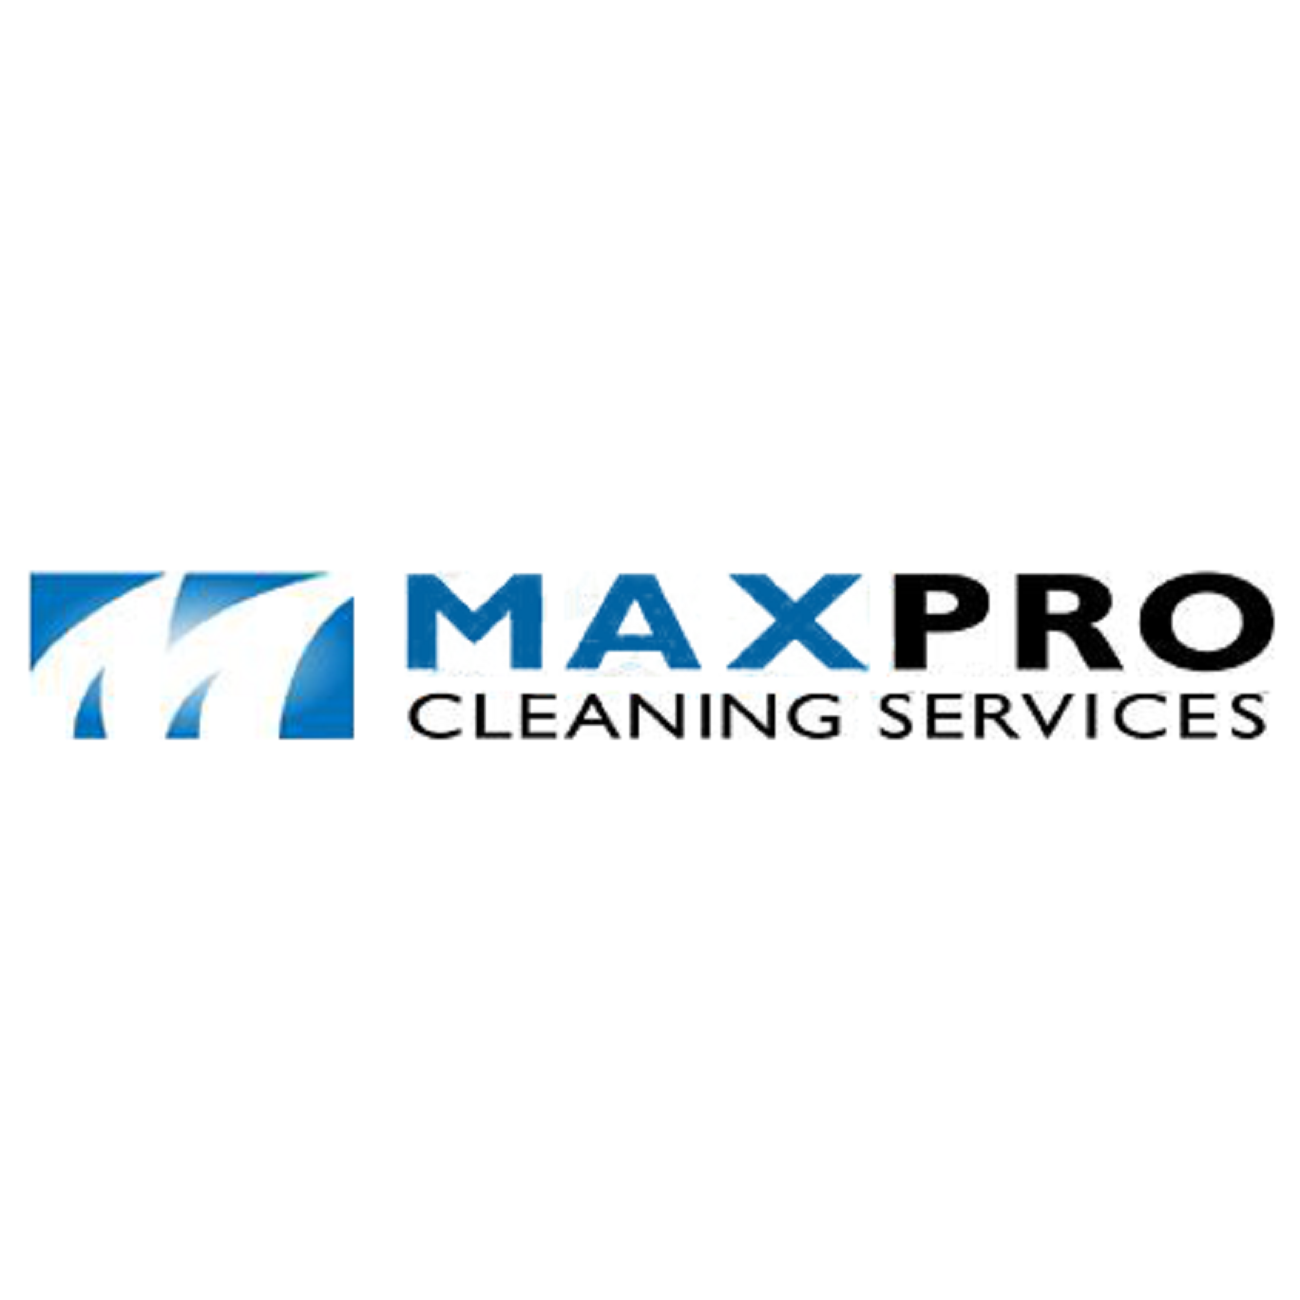 MAXPRO Cleaning Services image 0